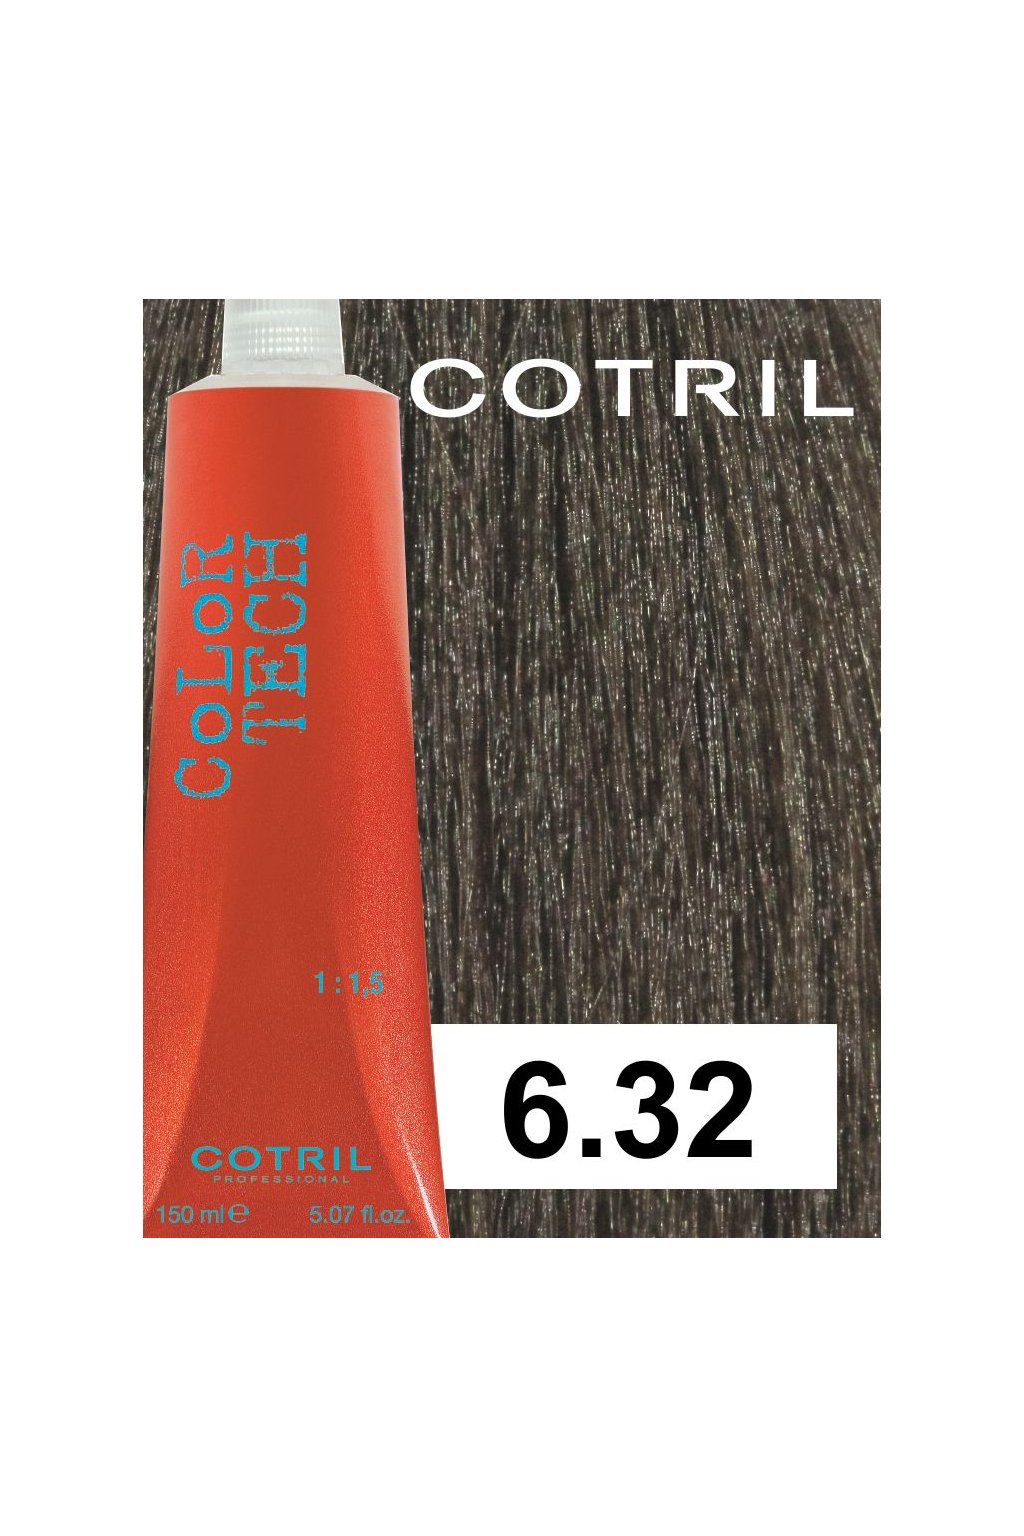 6 32 ct cotril